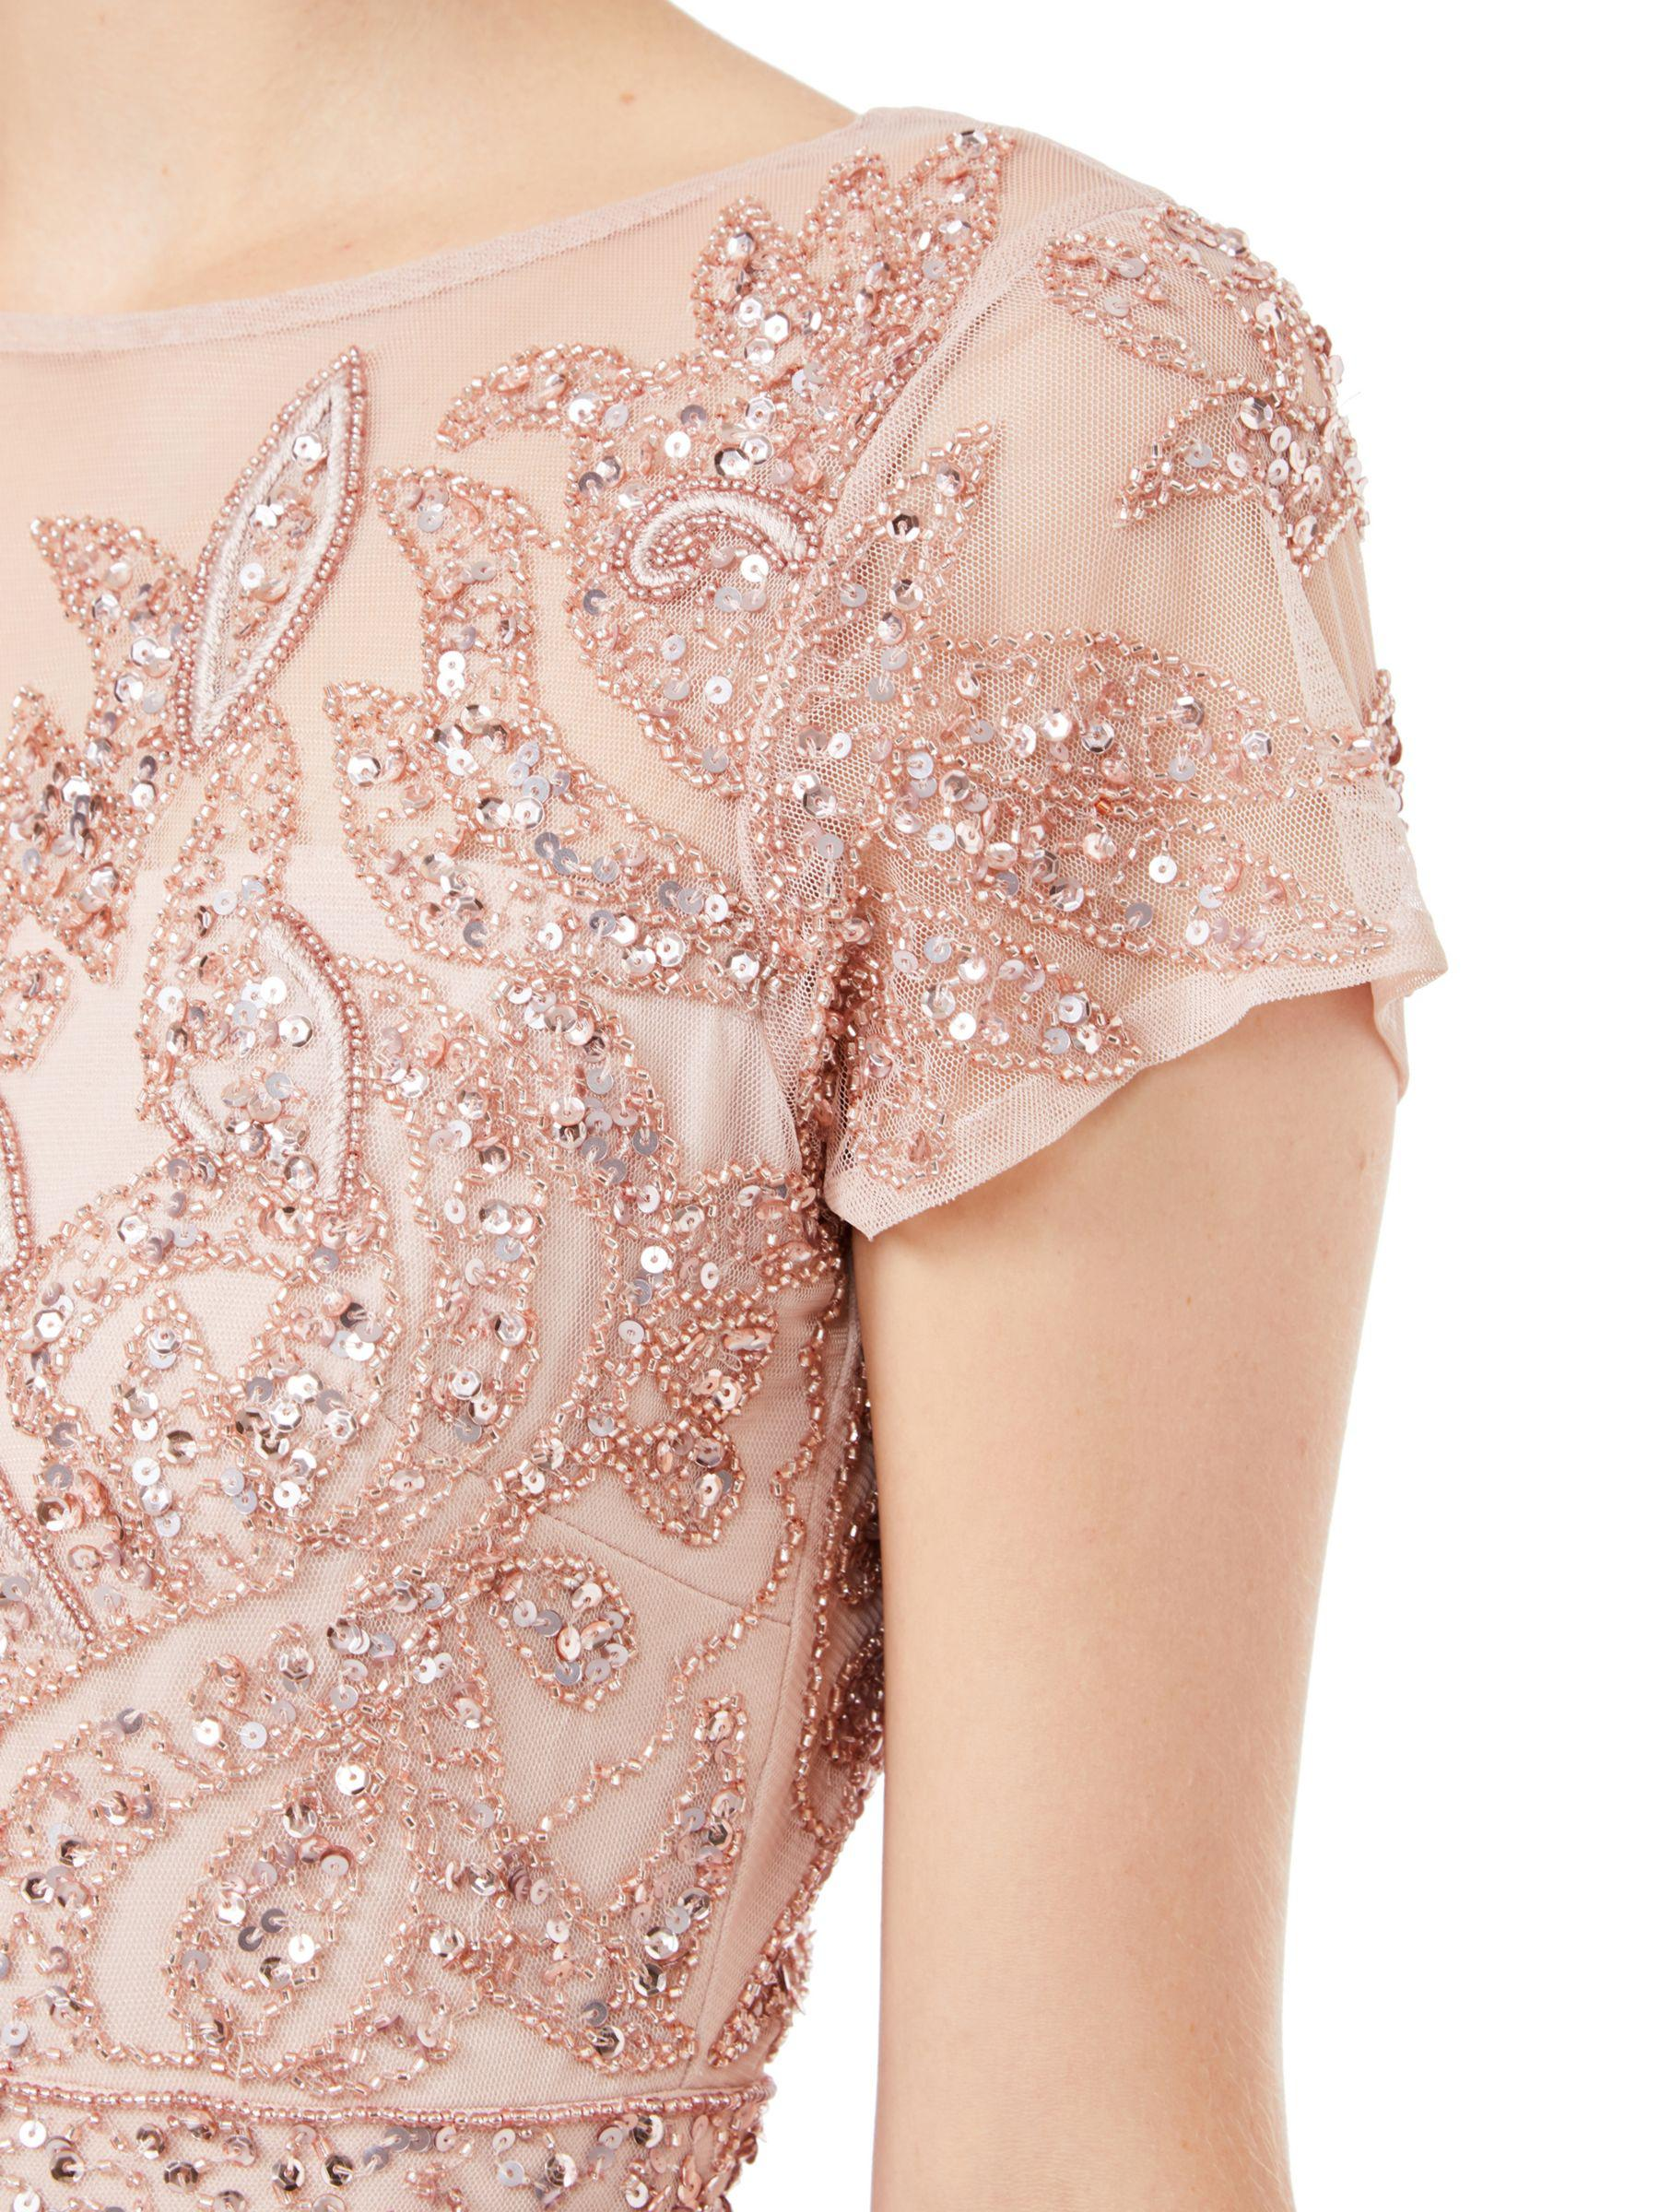 394d4144 Adrianna Papell Short Sleeve Beaded Cocktail Dress in Pink - Lyst